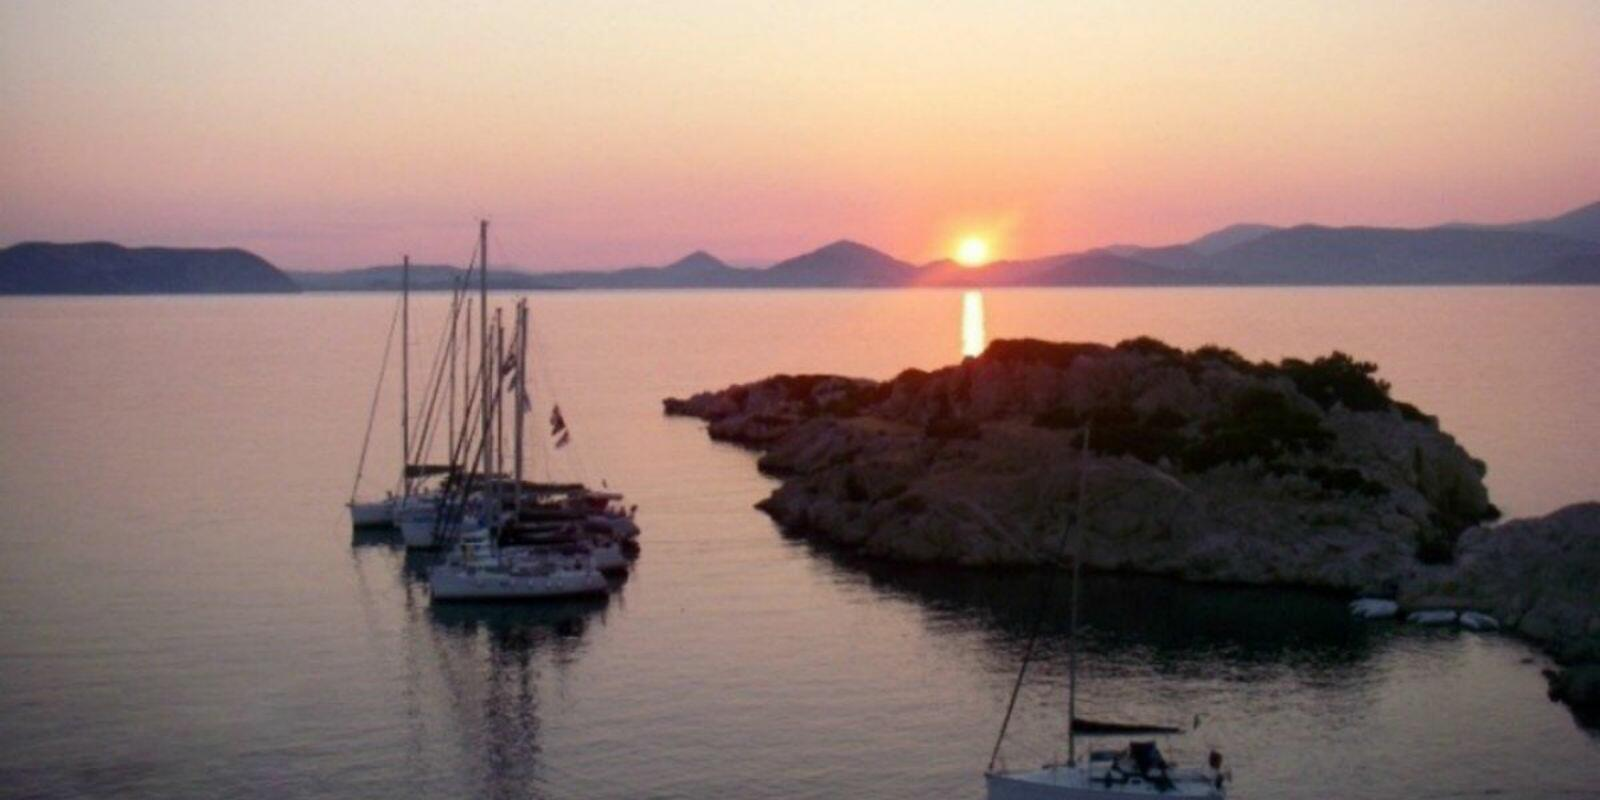 7 Nights on board exploring CYCLADES ISLANDS with experienced skipper